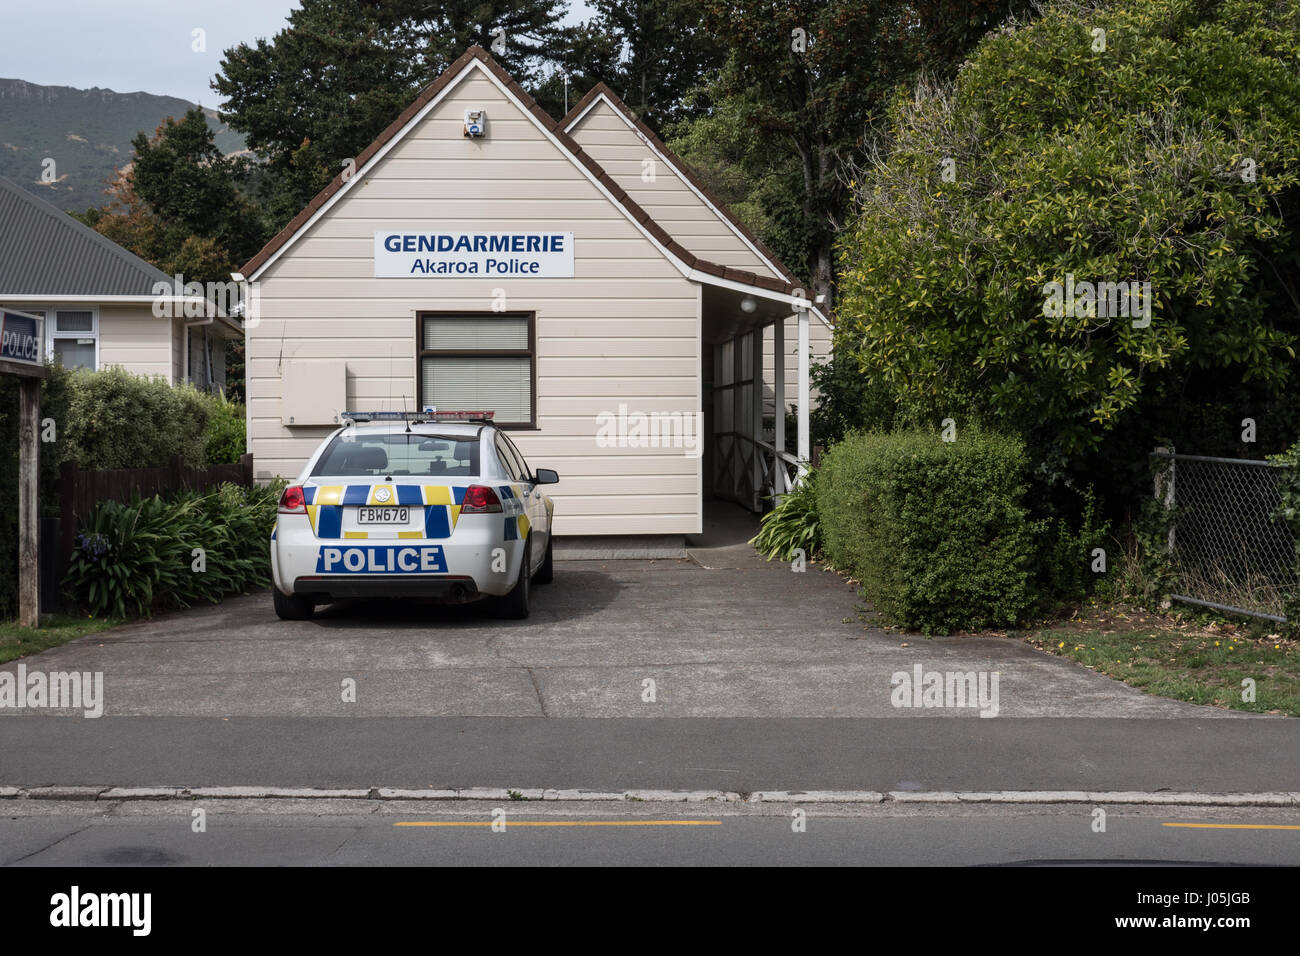 Akaroa Police Station or Gendarmerie (due to French influence), South Island, New Zealand. - Stock Image